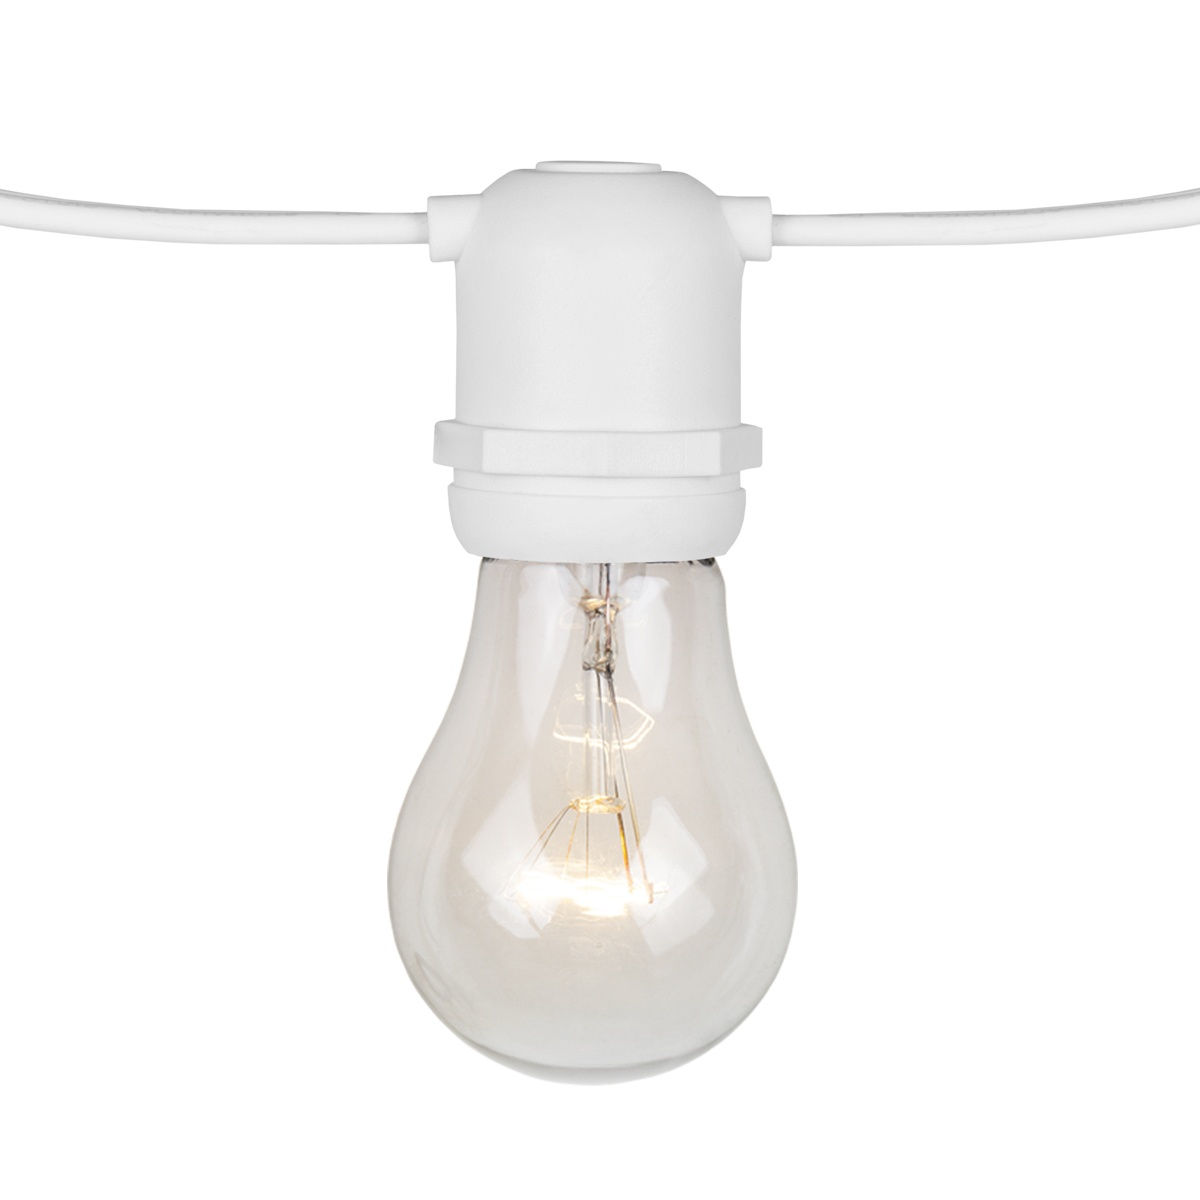 108u0027 Commercial Patio String With 50 A15 Clear Outdoor Patio Lights